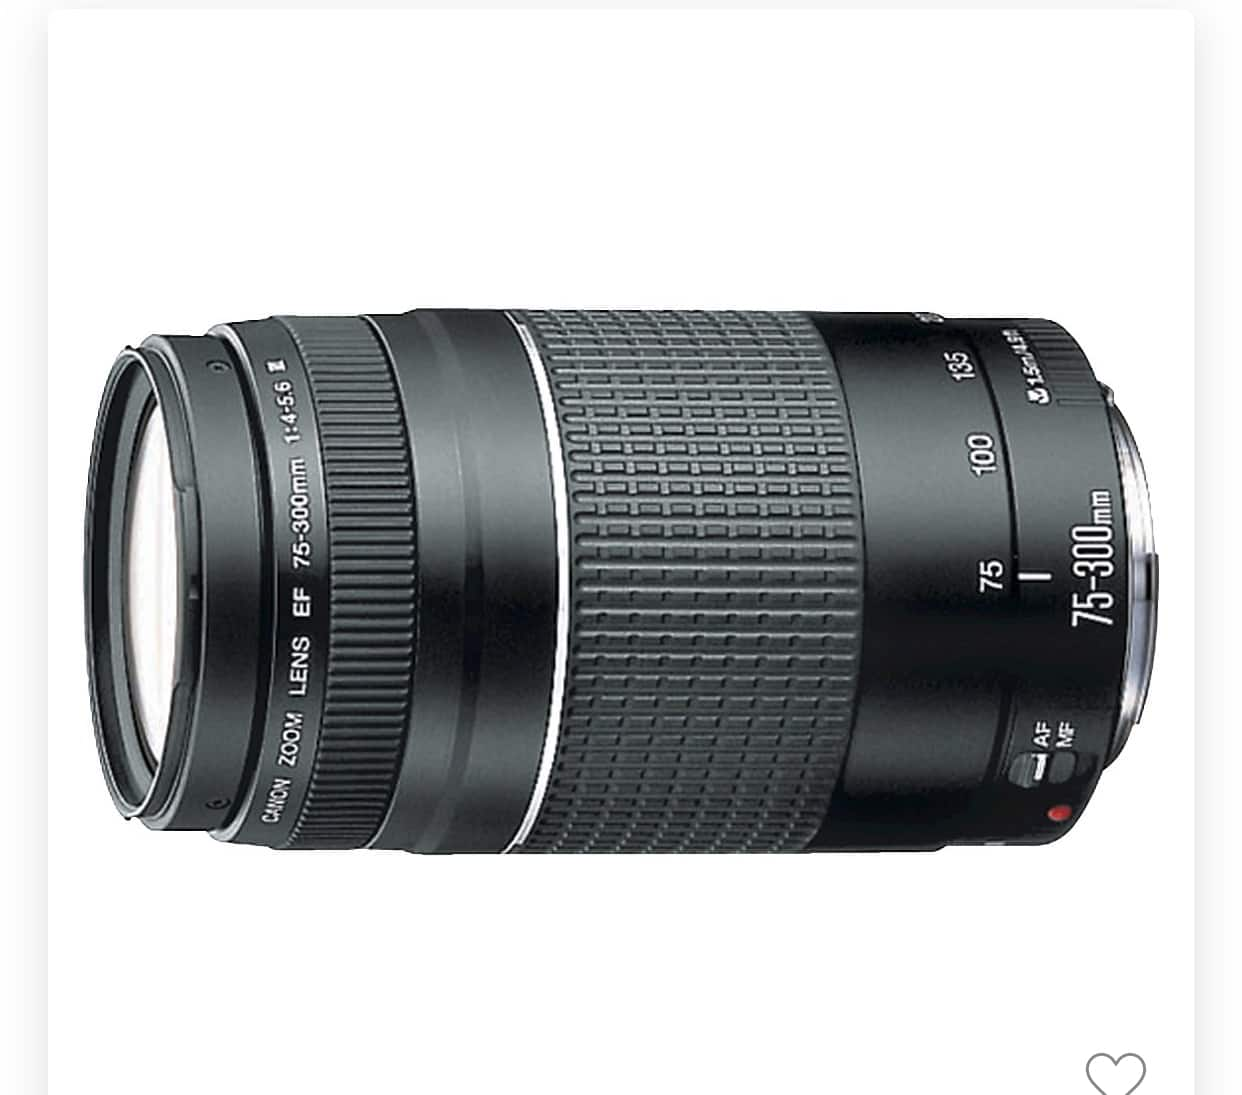 Canon EF 75-300mm - $49.99